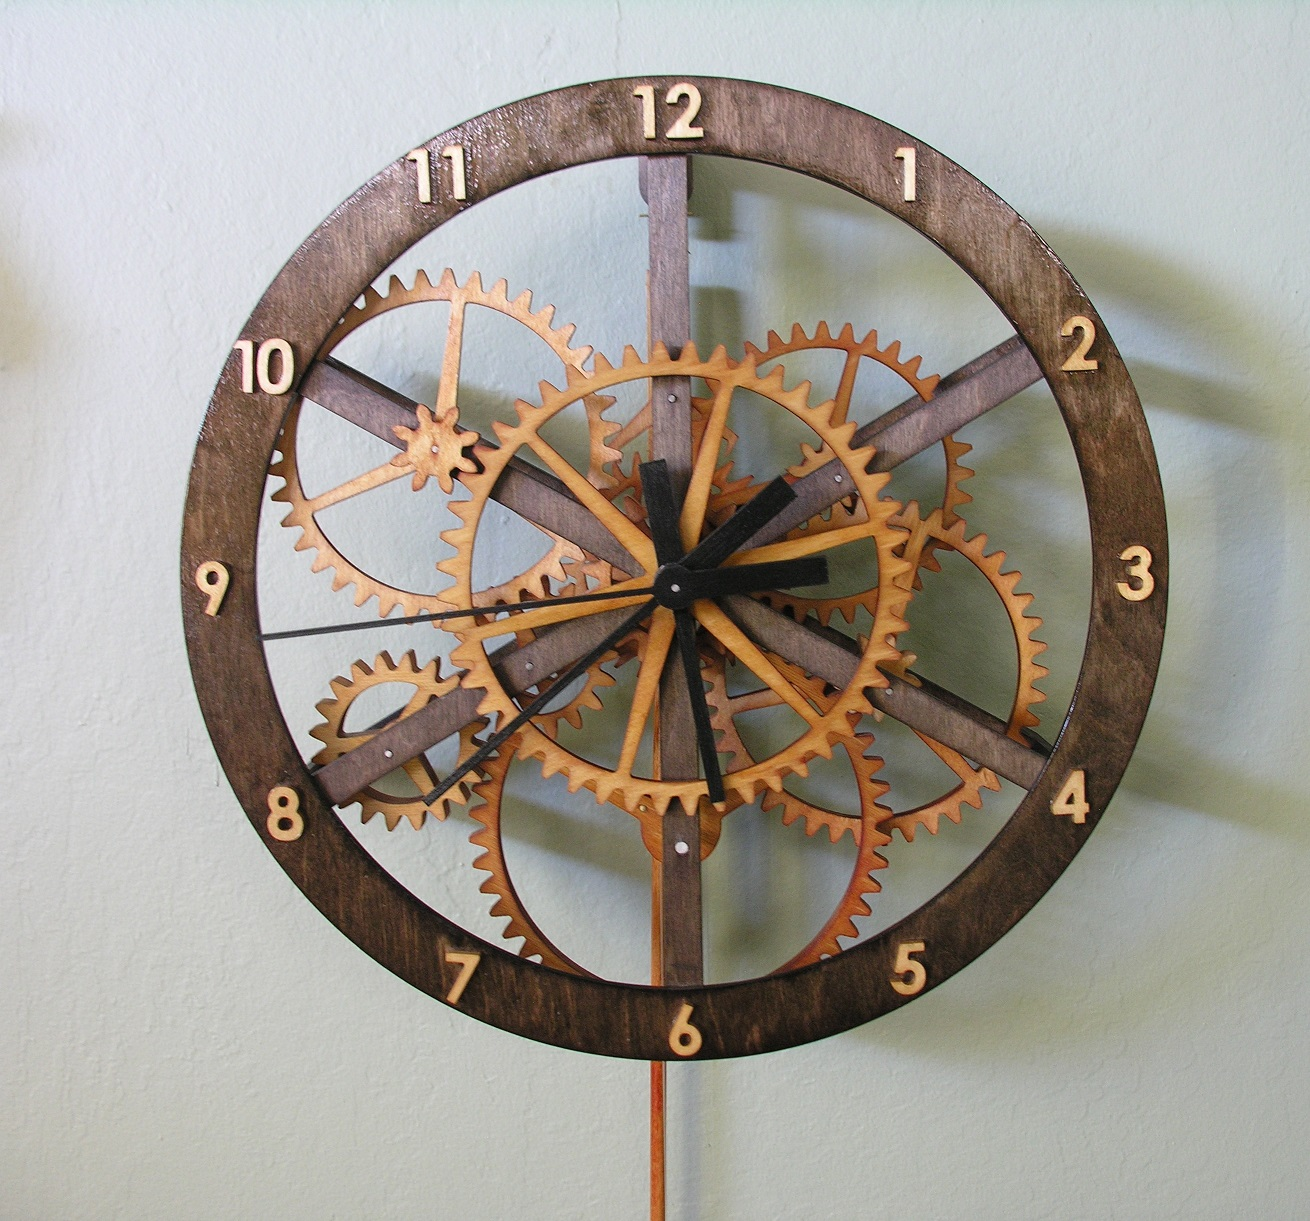 Starchar Clock Plans The Wooden Clock